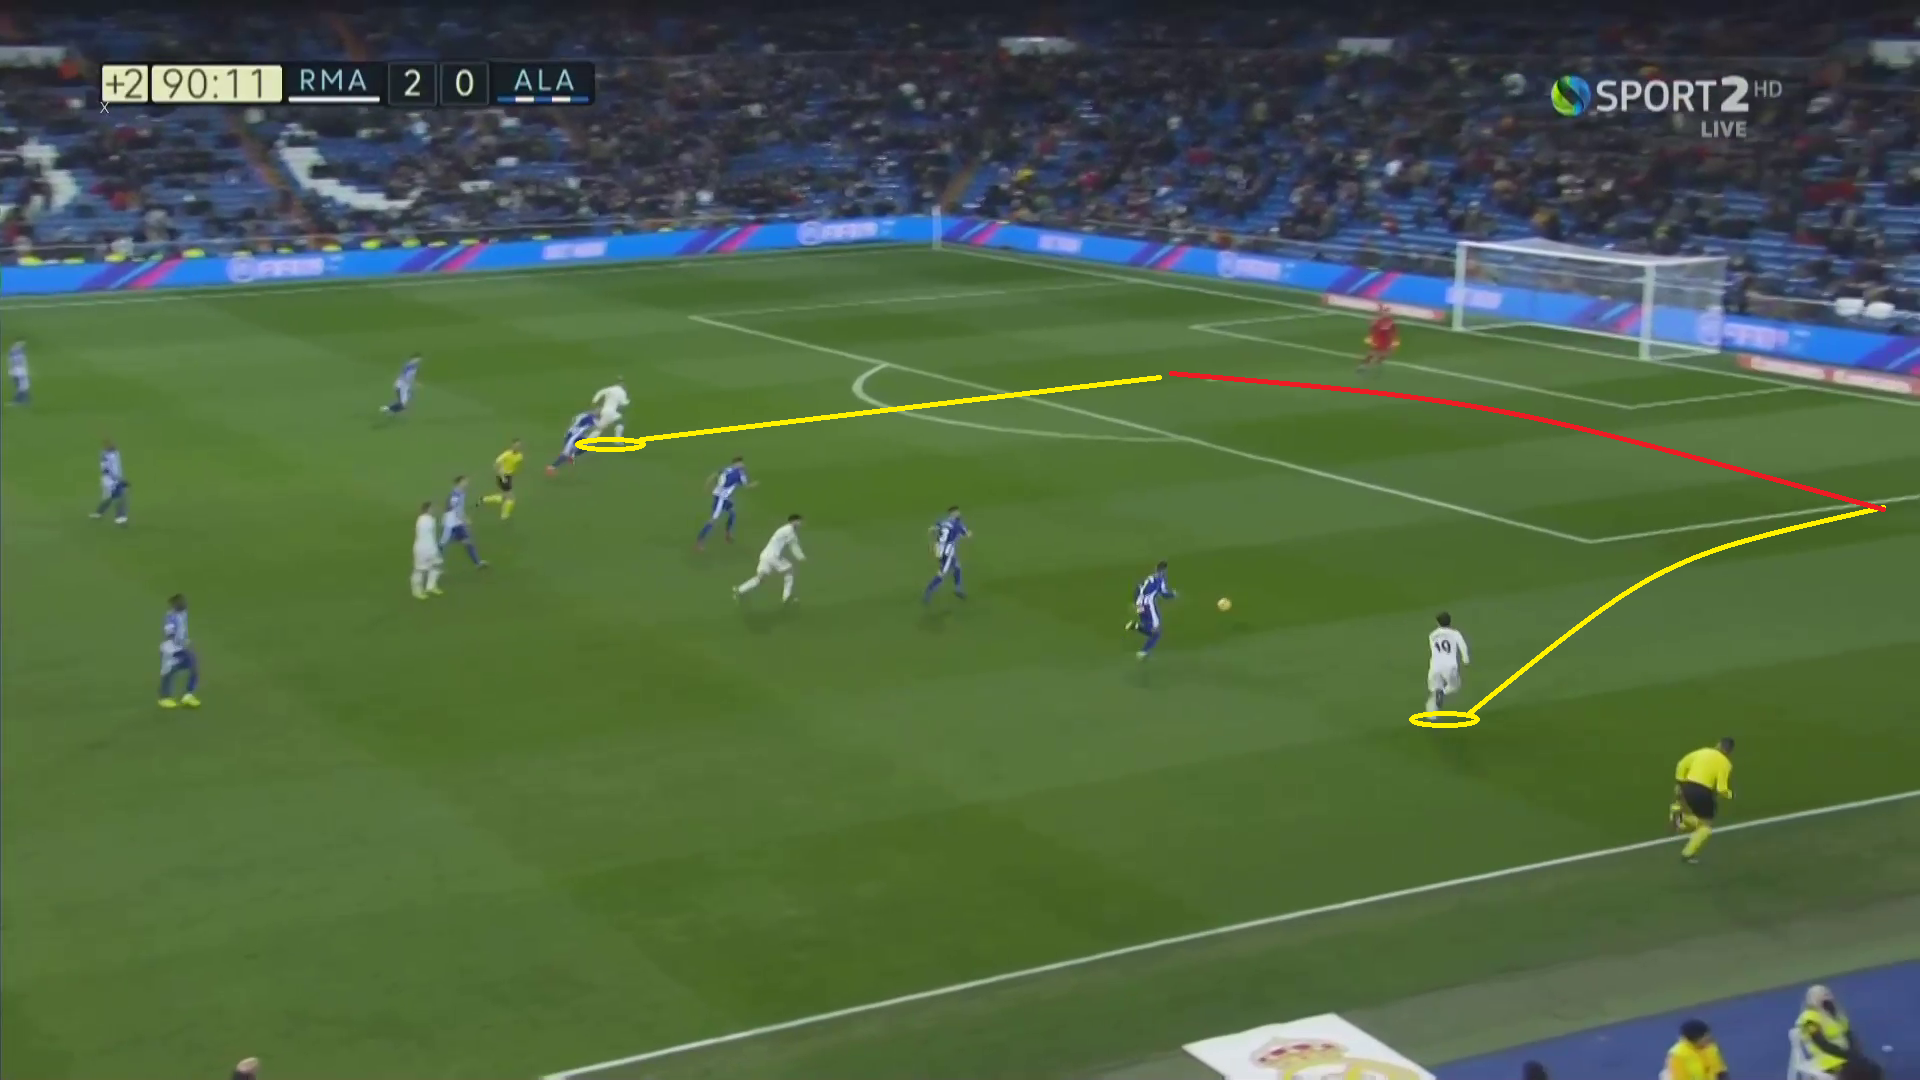 Real Madrid Alaves La Liga Tactical Analysis Statistics